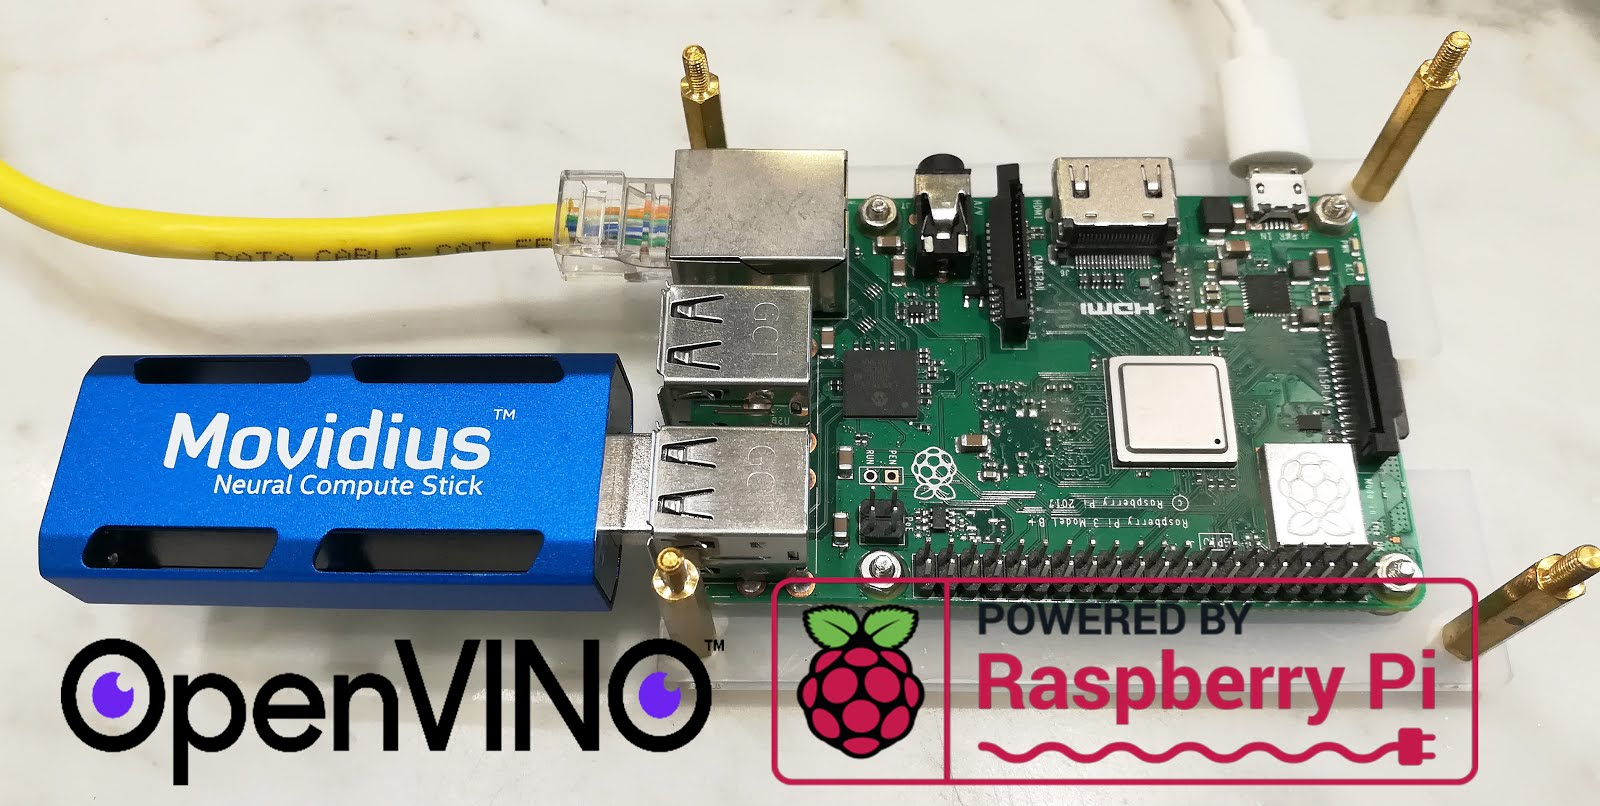 Raspberry Pi Projects Raspberry Pi Openvino With Intel